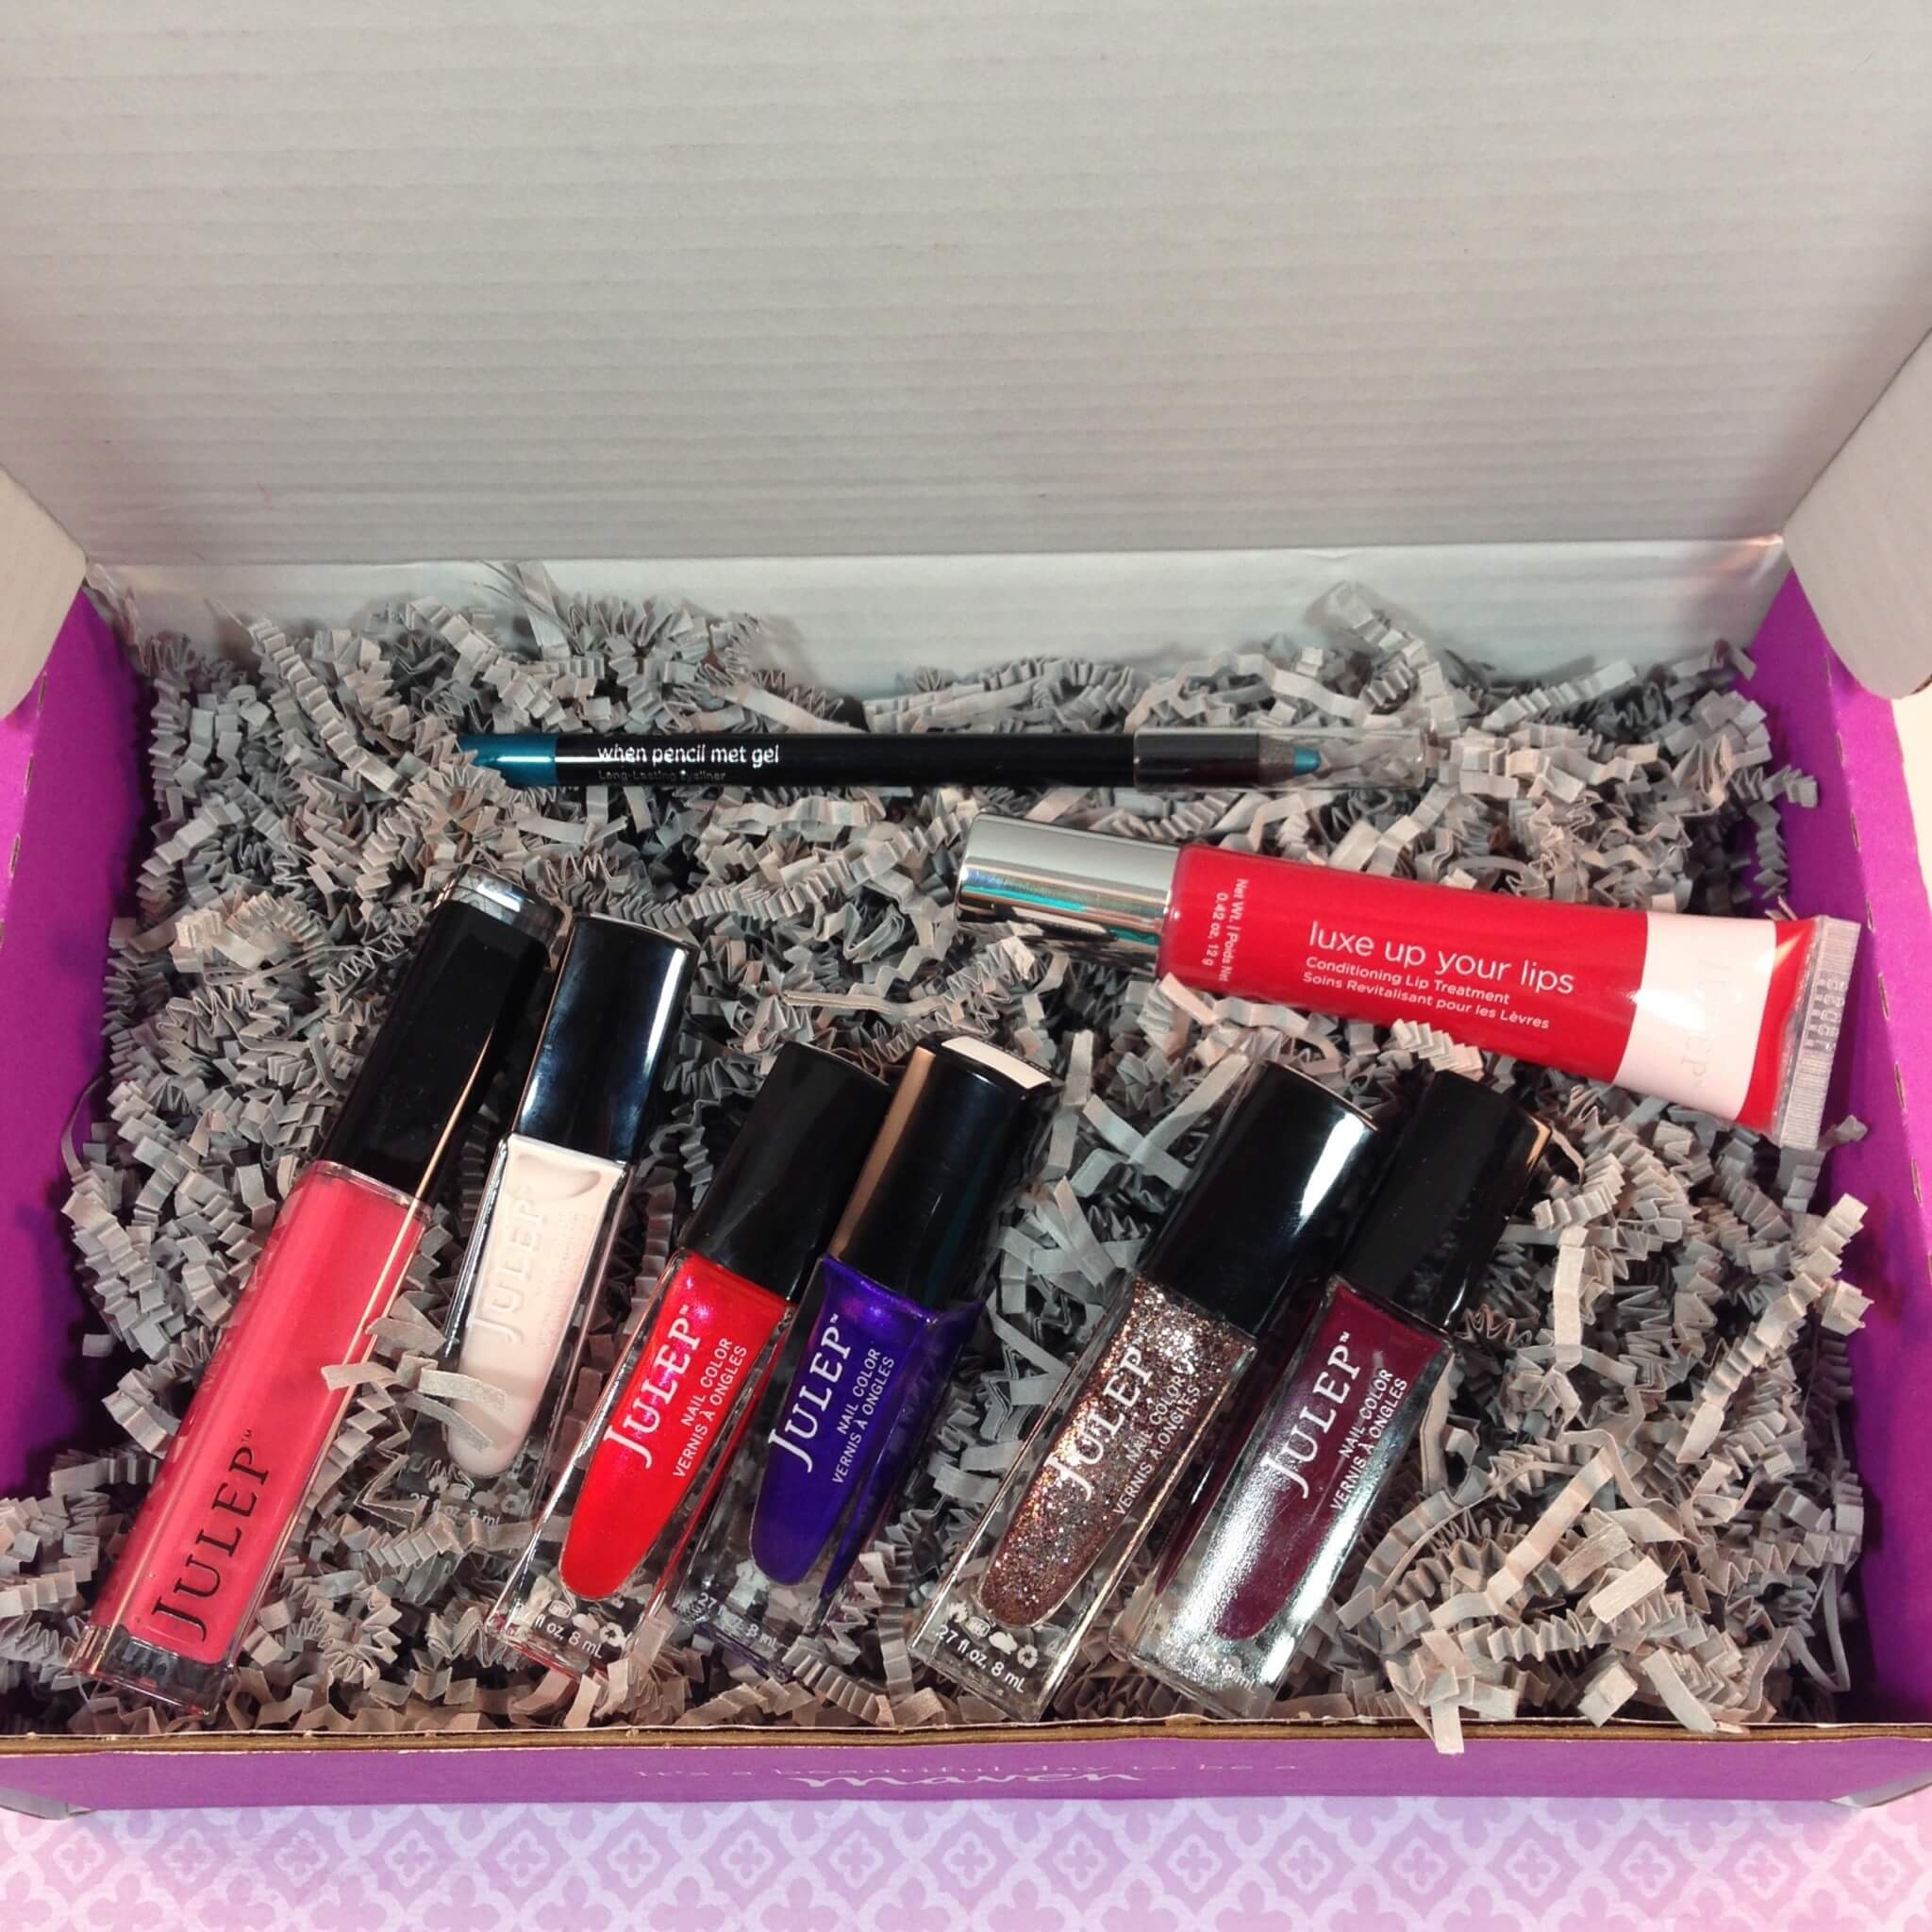 Julep Pool Party Mystery Box Review – Still Available!